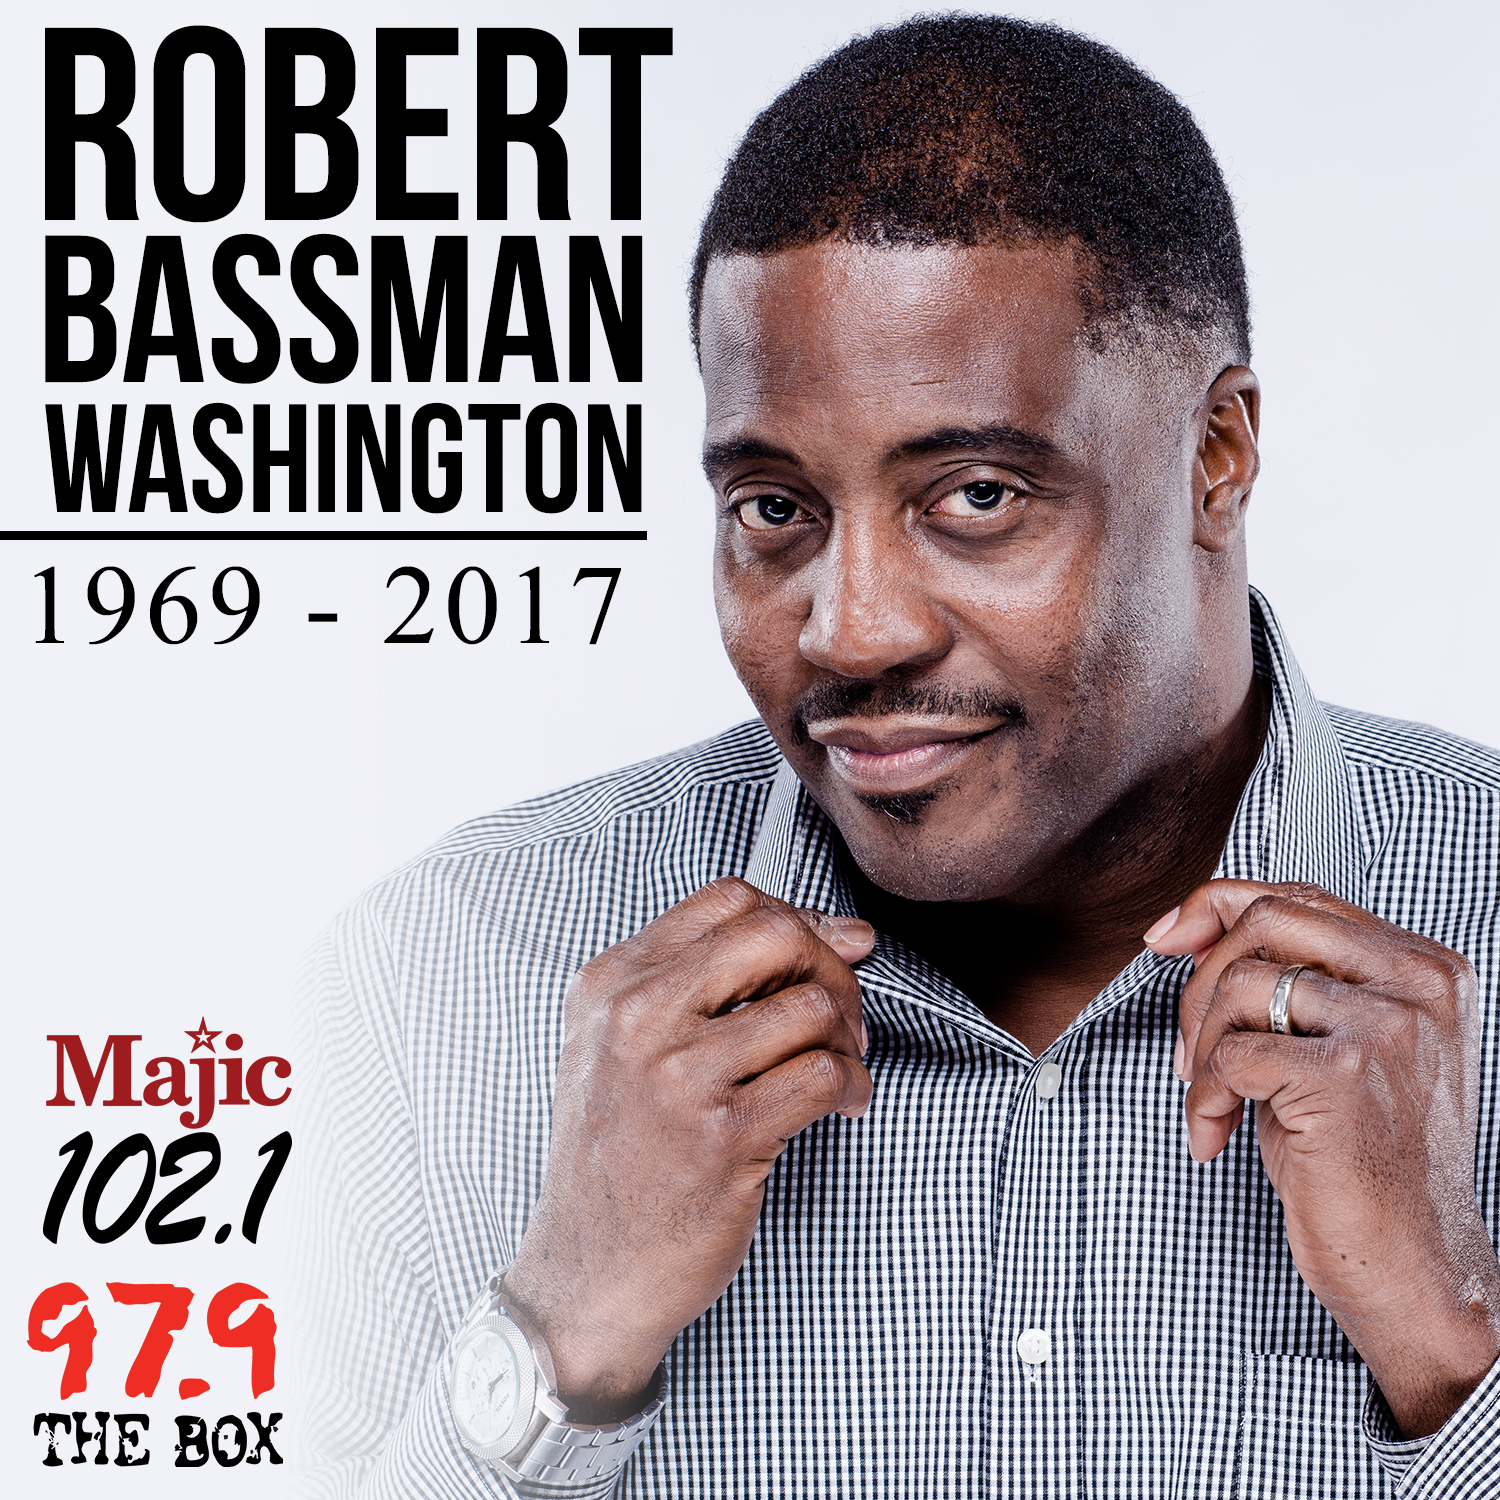 Robert Bassman Washington